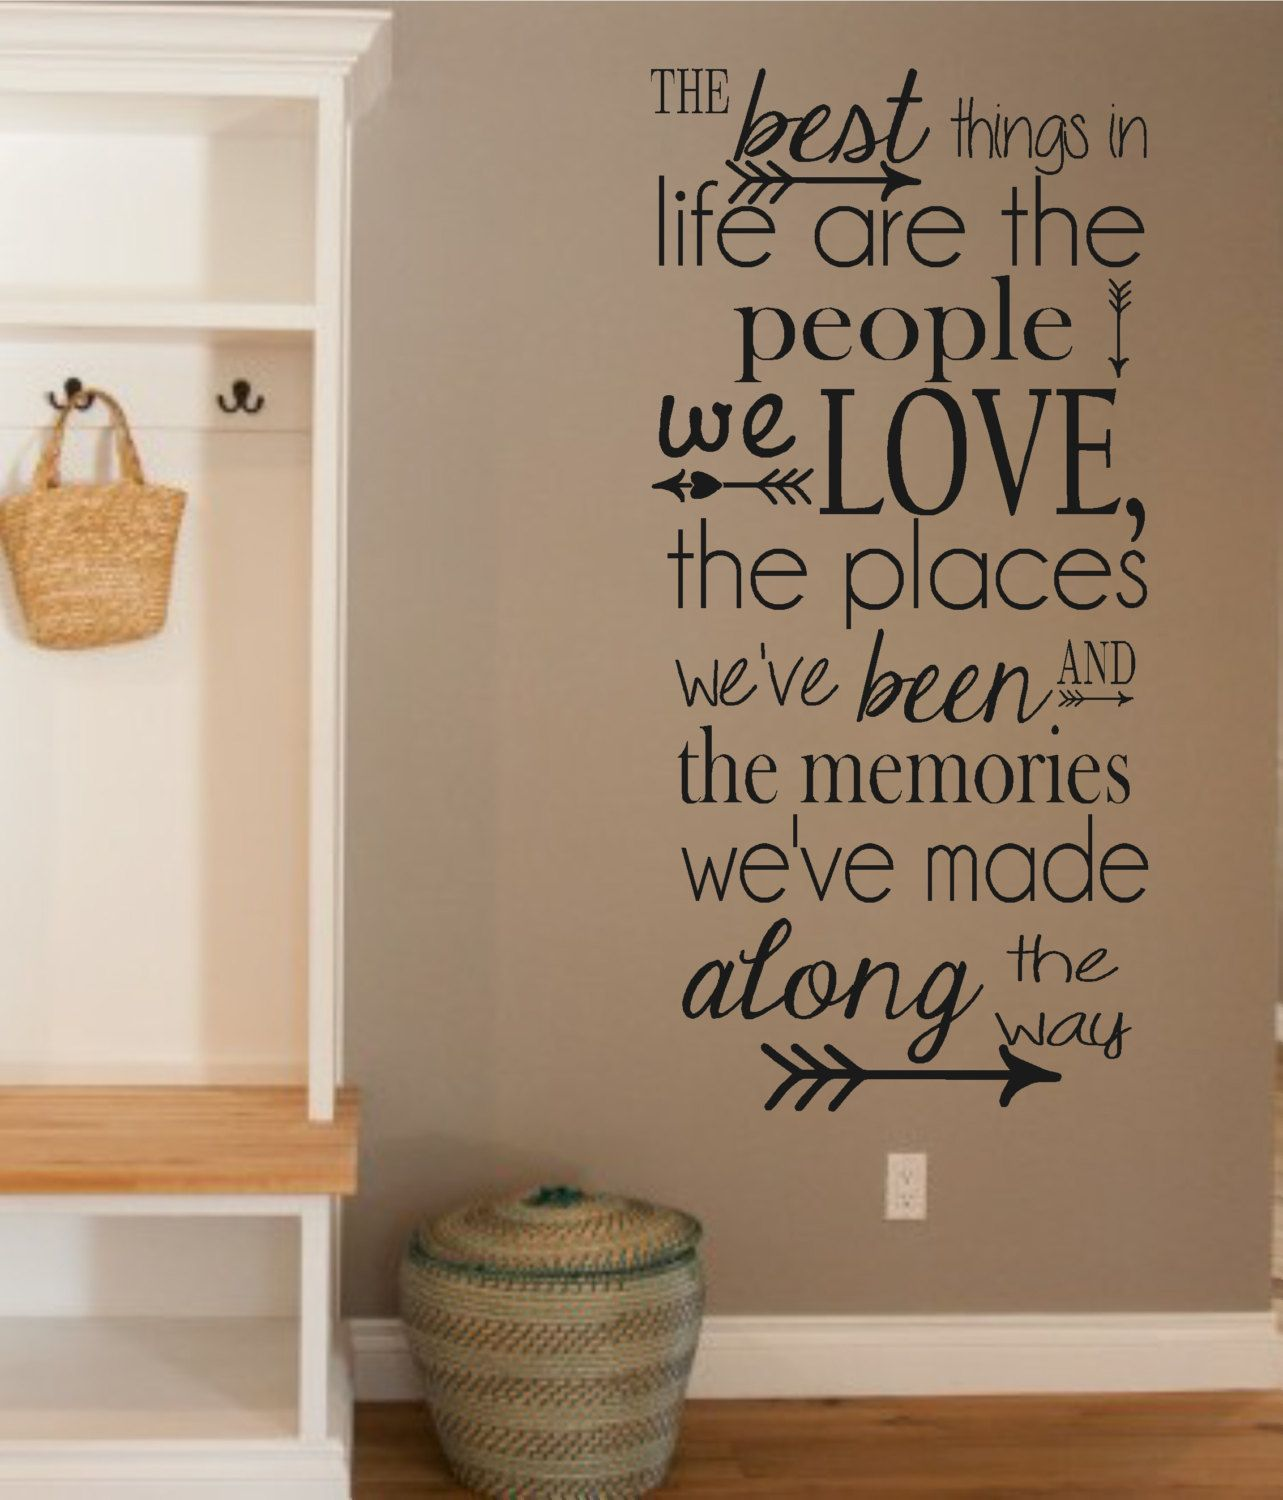 Vinyl Wall Decal The Best Things In Life  People  Love  Memories  Vinyl Wall  Quotes  Family Decor  Living Room Decor By Landbgraphics On Etsy